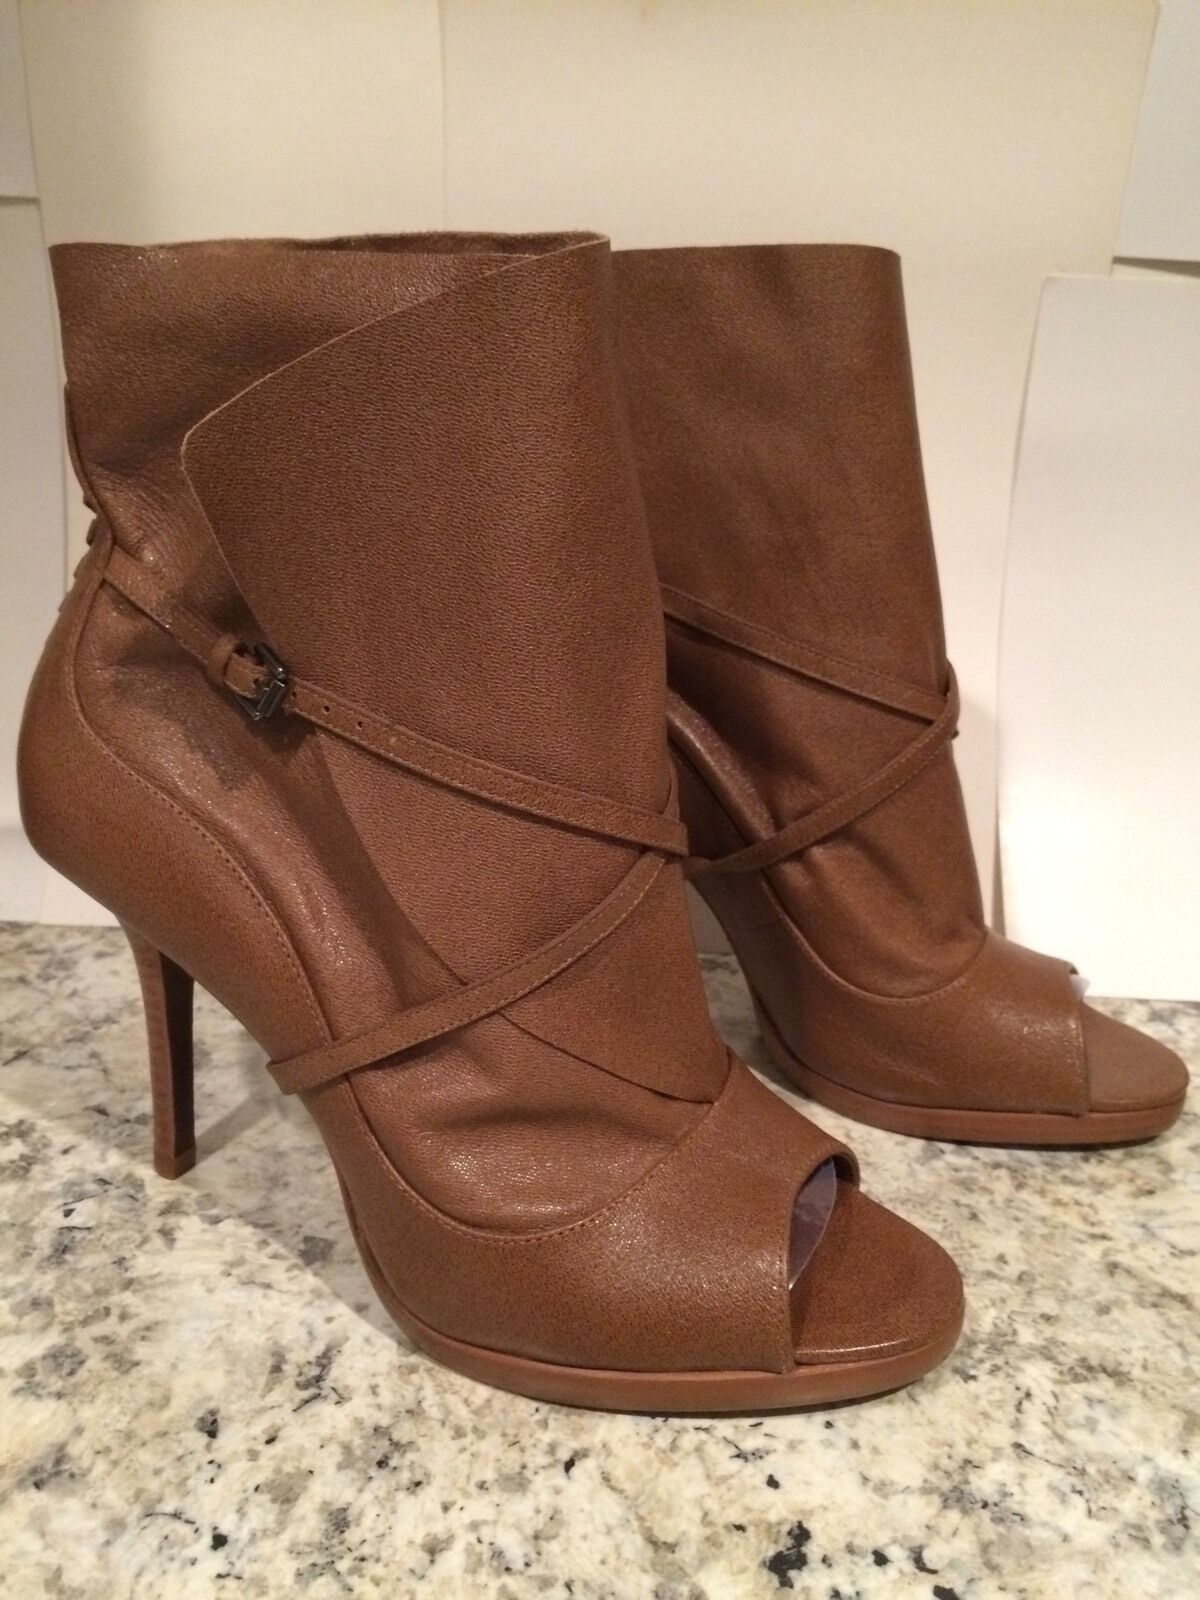 Max Azria Wrap Booties Soft Leather Open Toe Heel (BCBG) Brown 40 9.5 New Nice